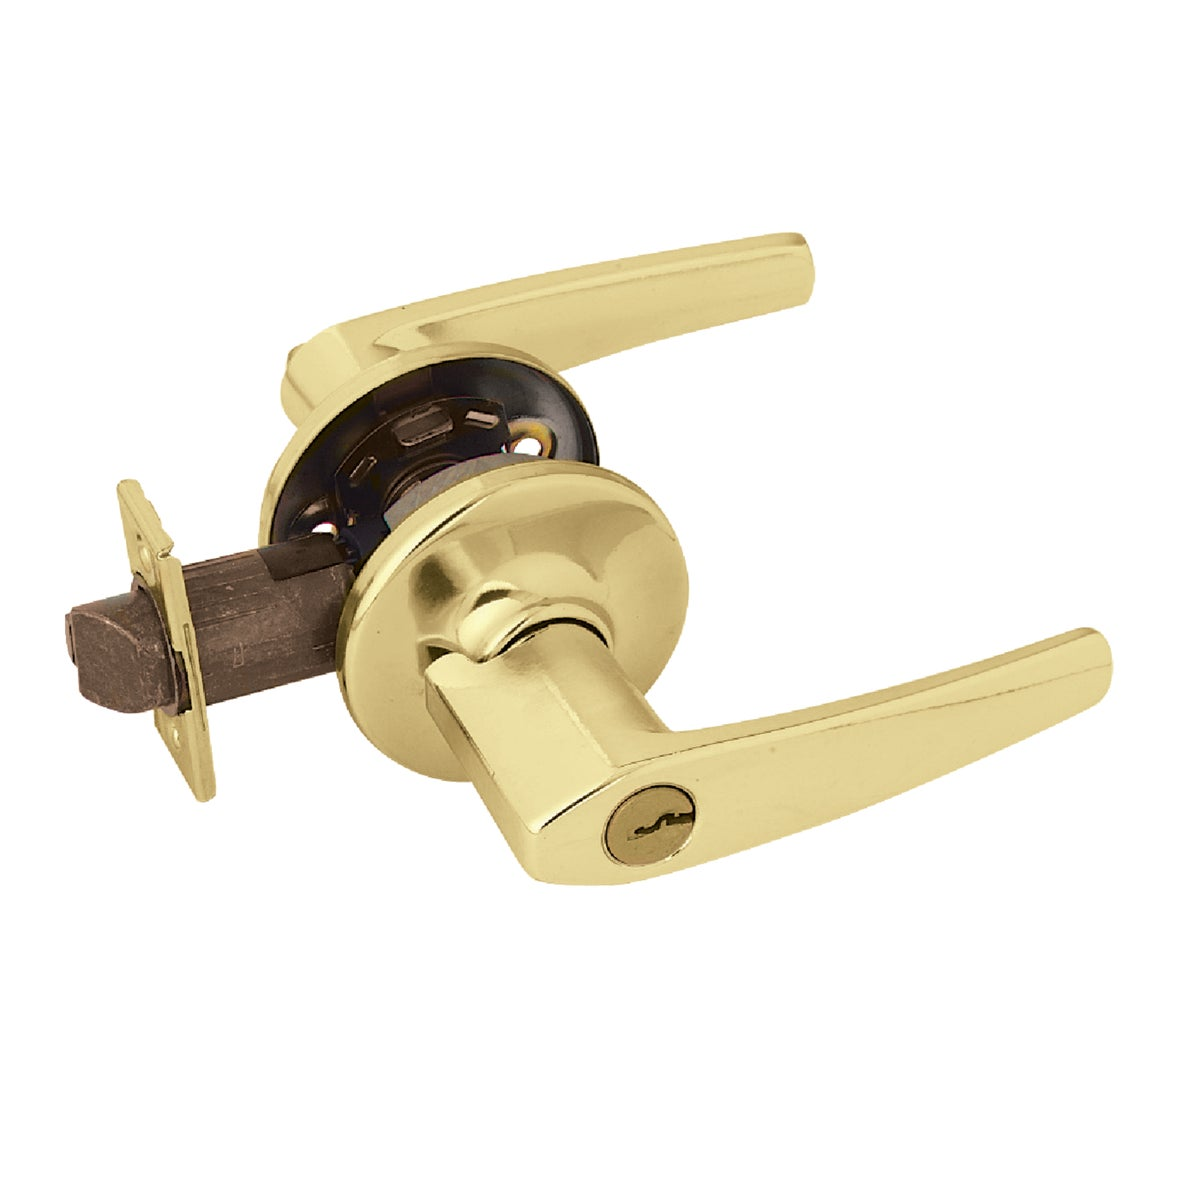 PB CP DELTA ENTRY LOCK - 405DL 3 CP K6 by Kwikset